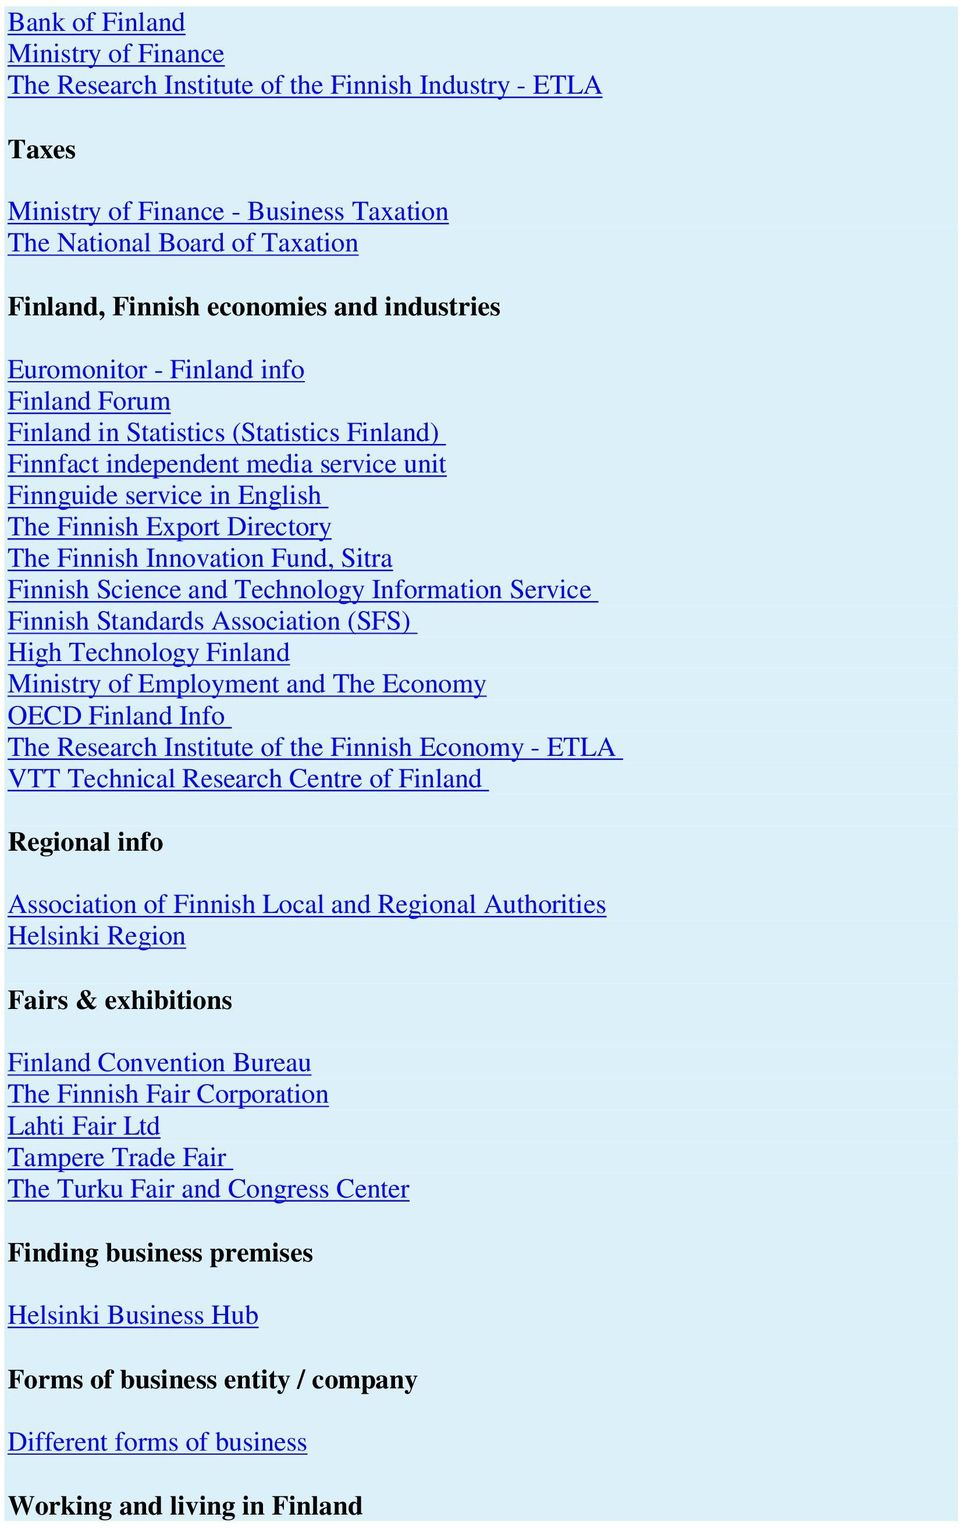 Finnish Innovation Fund, Sitra Finnish Science and Technology Information Service Finnish Standards Association (SFS) High Technology Finland Ministry of Employment and The Economy OECD Finland Info